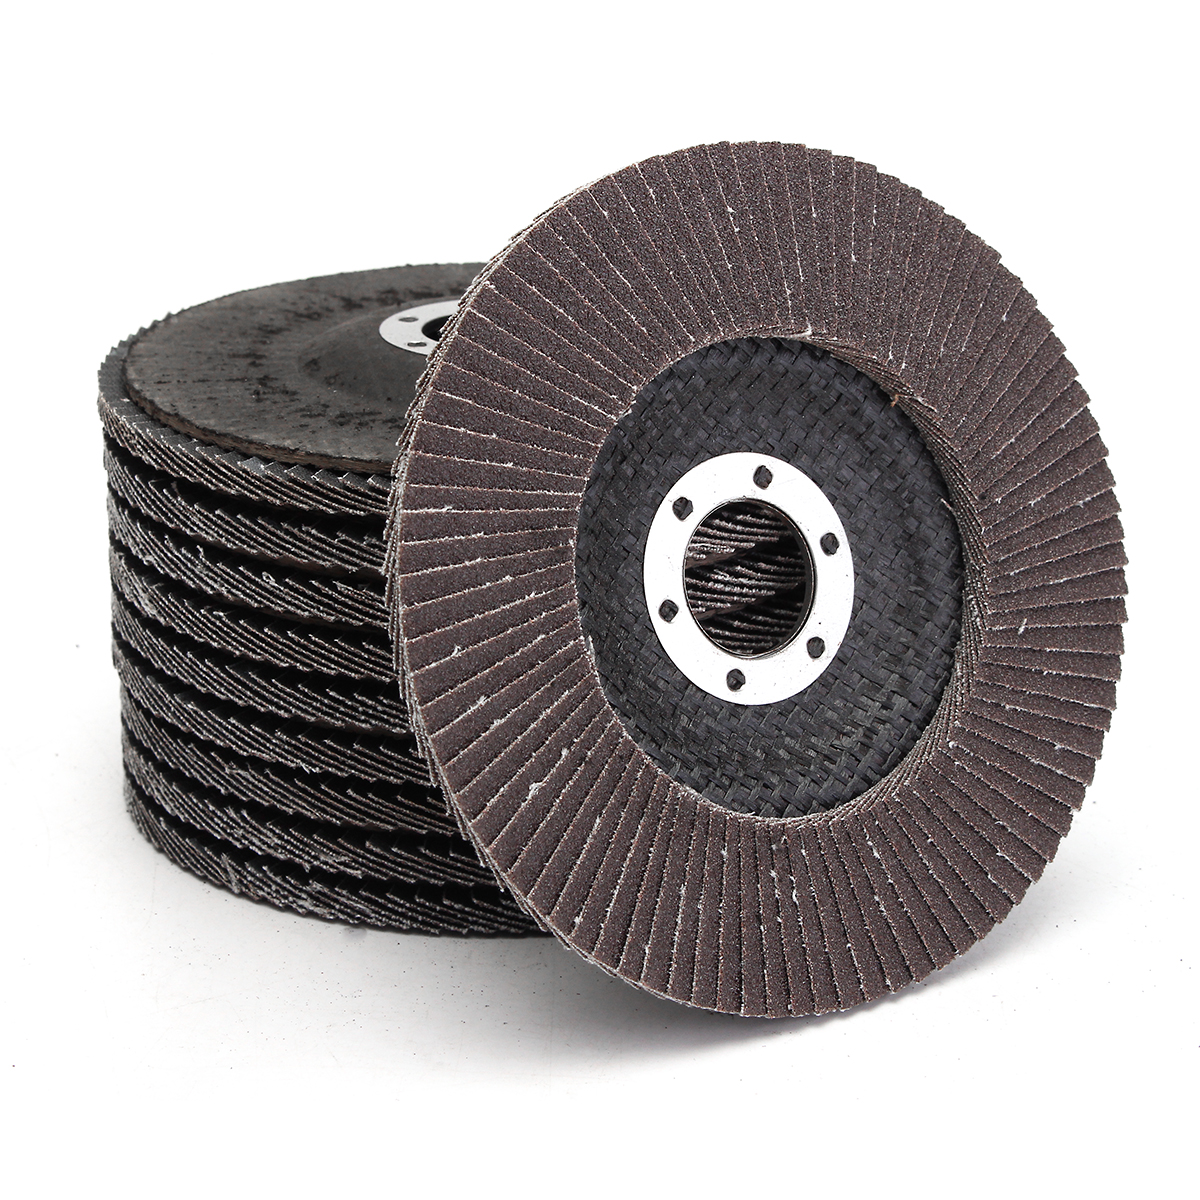 """10Pcs 5"""" 125mm 40 60 80 120 Grit Angle Grinder Flap Sanding Disc Grinding Wheels Silicon Carbide Polishing Cutting Copper"""